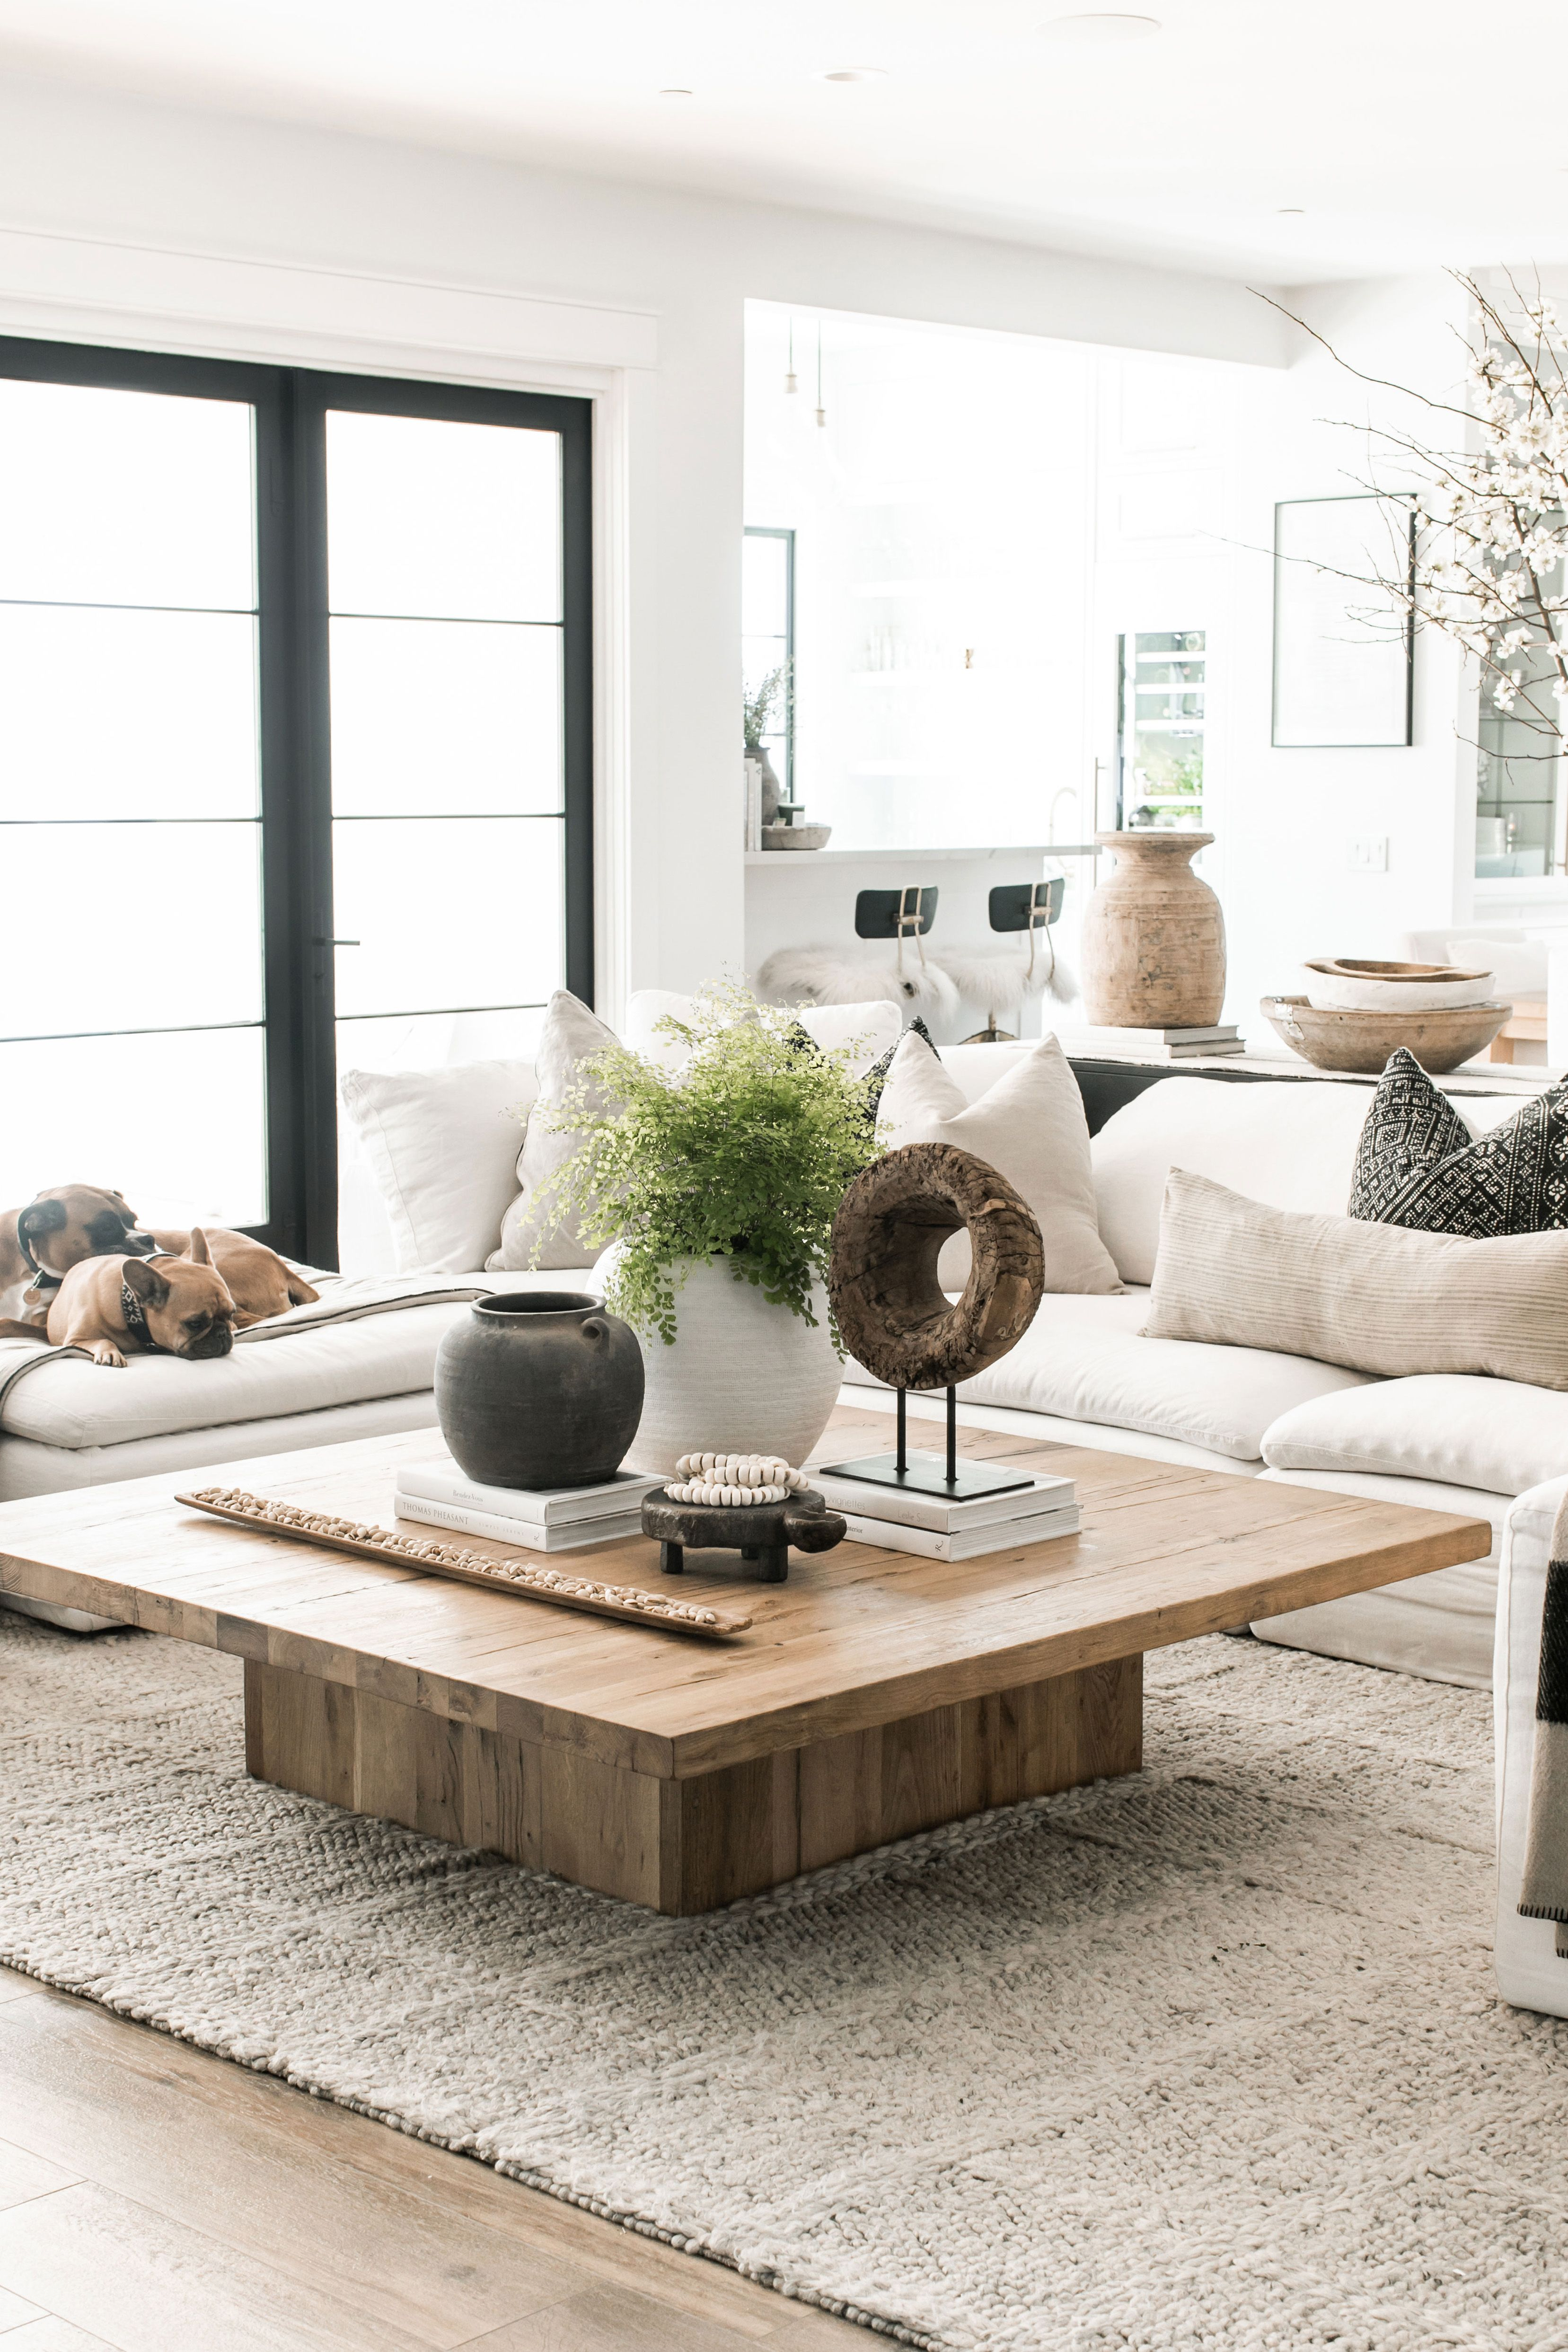 Let S Talk Coffee Table Styling We Love Mixing Old And New Pieces